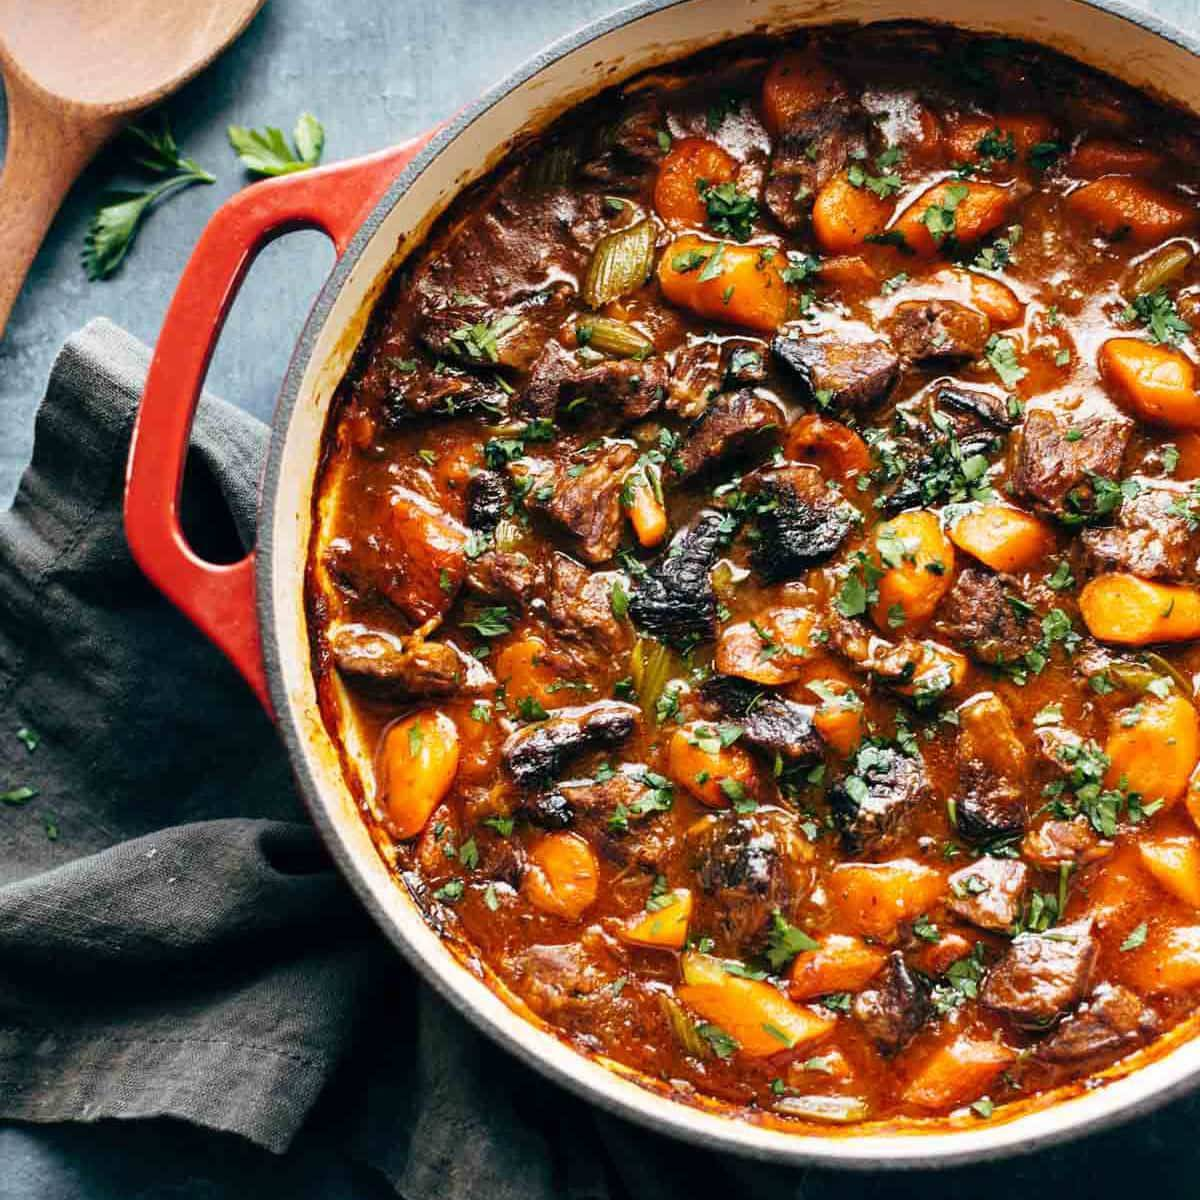 Beef Stew in a pot.